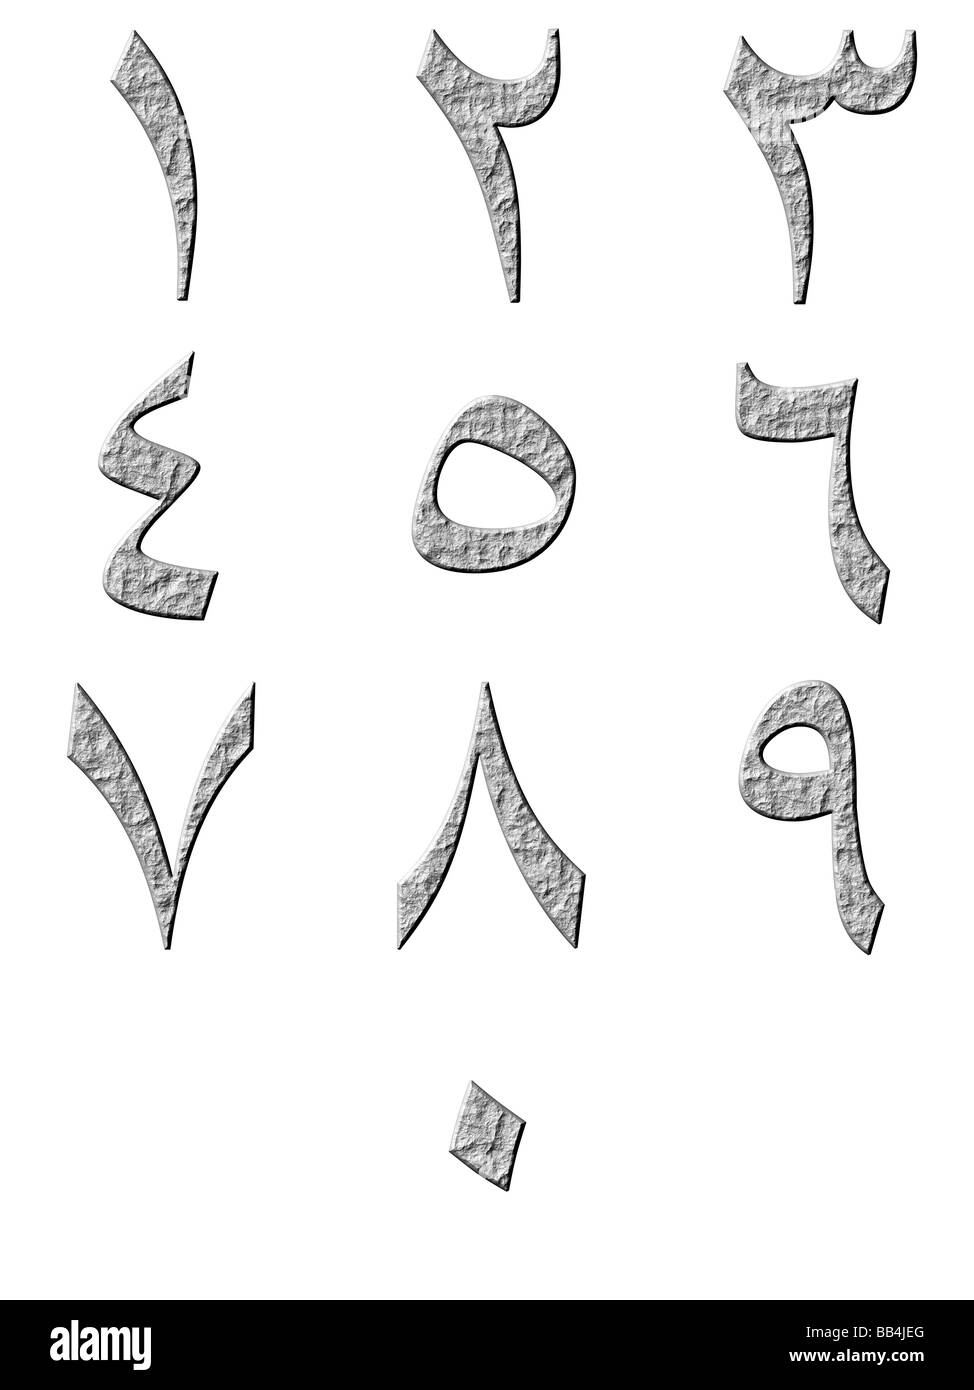 3d stone arab numbers - Stock Image